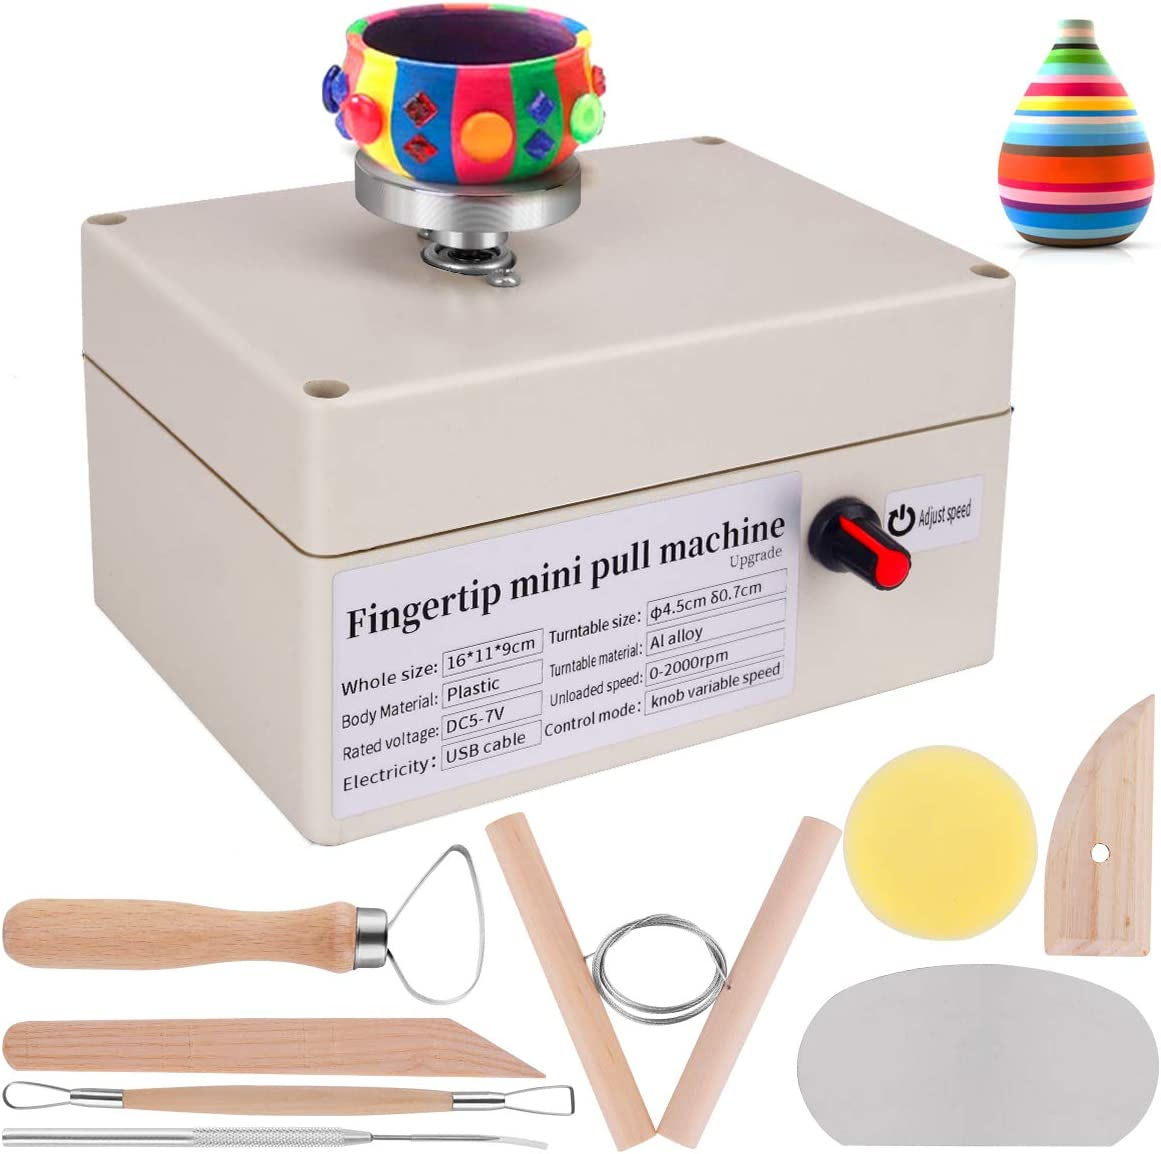 Yofuly Mini Pottery Wheel, USB Pottery Machine with 6 Pottery Shaping Tools, 2000 RPM Pottery Wheel Mini Clay Making Pottery Machine Ceramic DIY Craft for School Teaching, Pottery Bar or Home Use